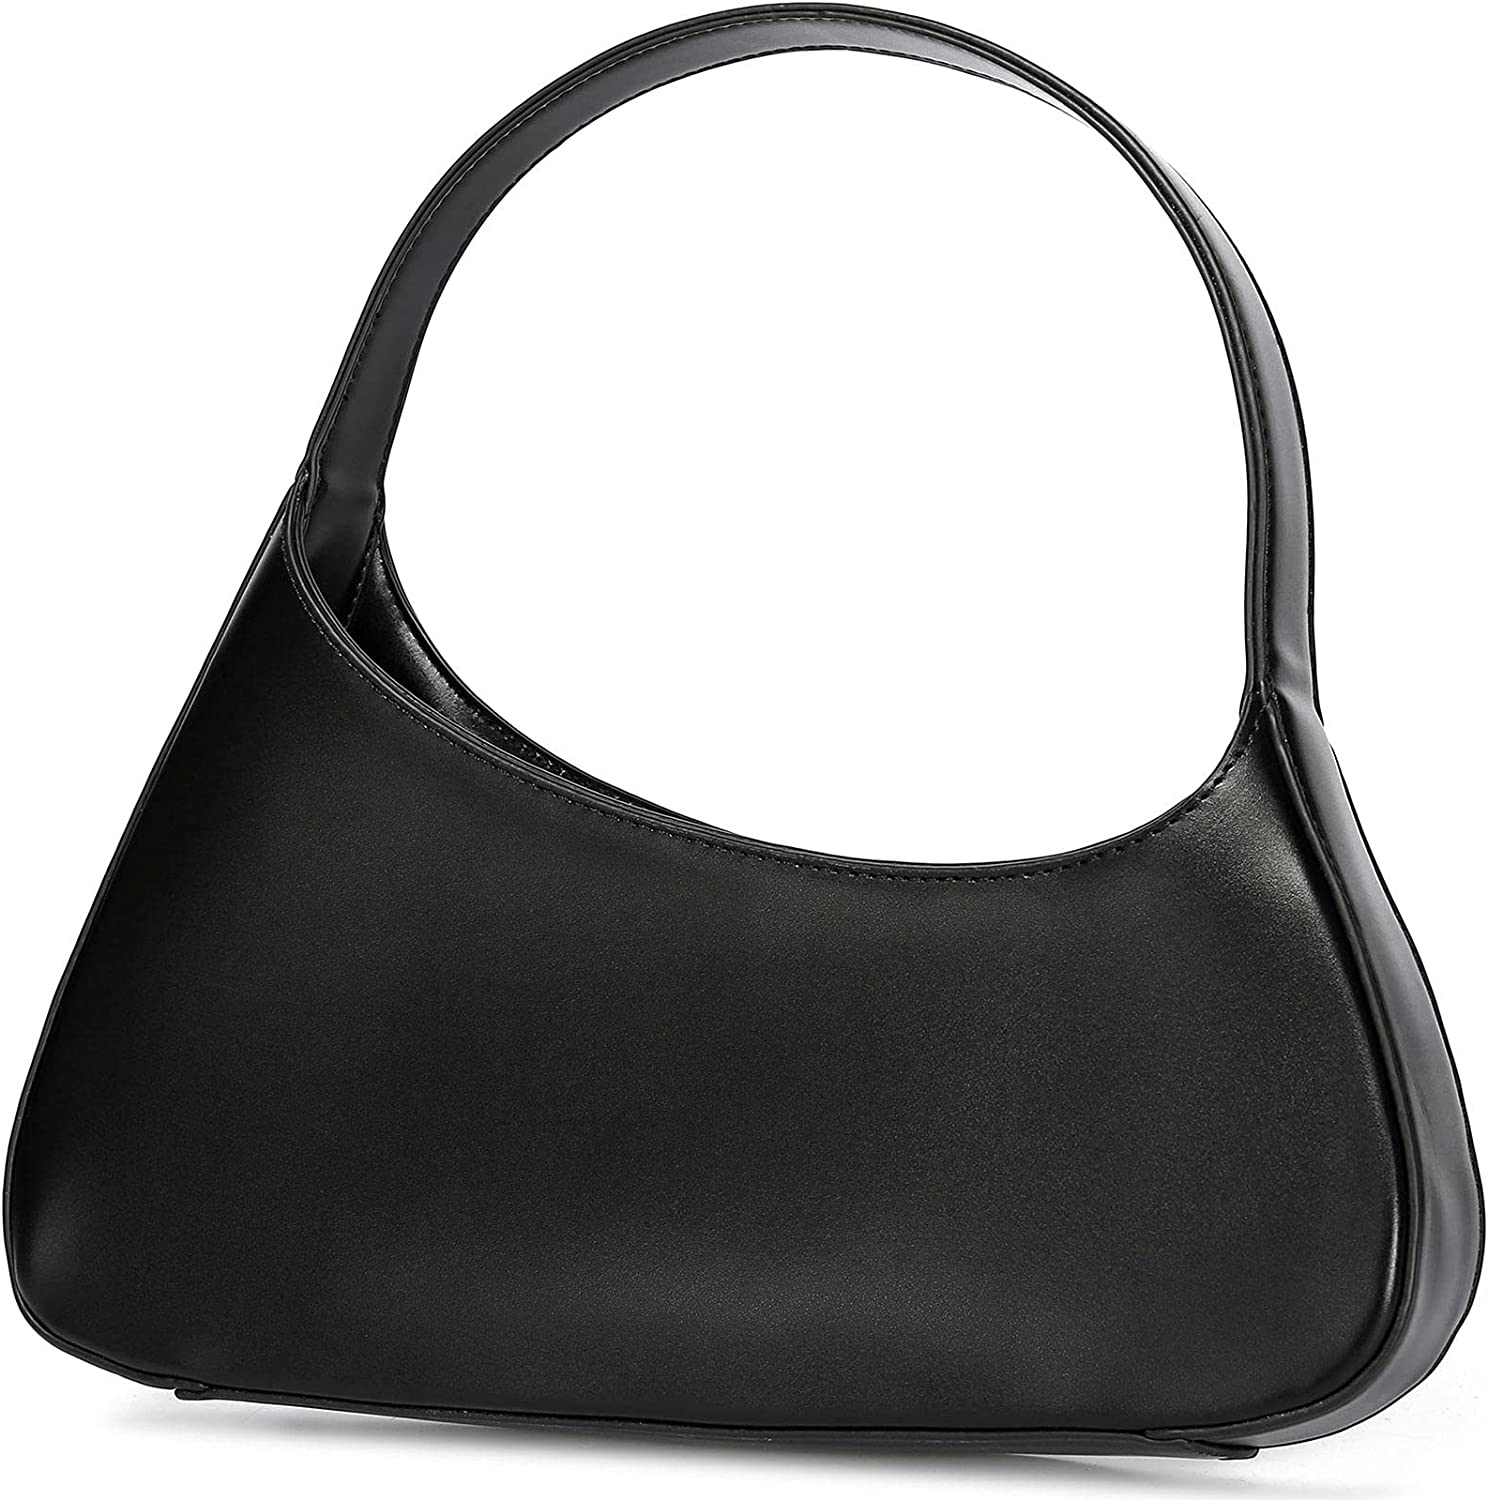 YIKOEE Fashion Shoulder Bags for Women shop Hobo Purse with Sales of SALE items from new works Small Mo